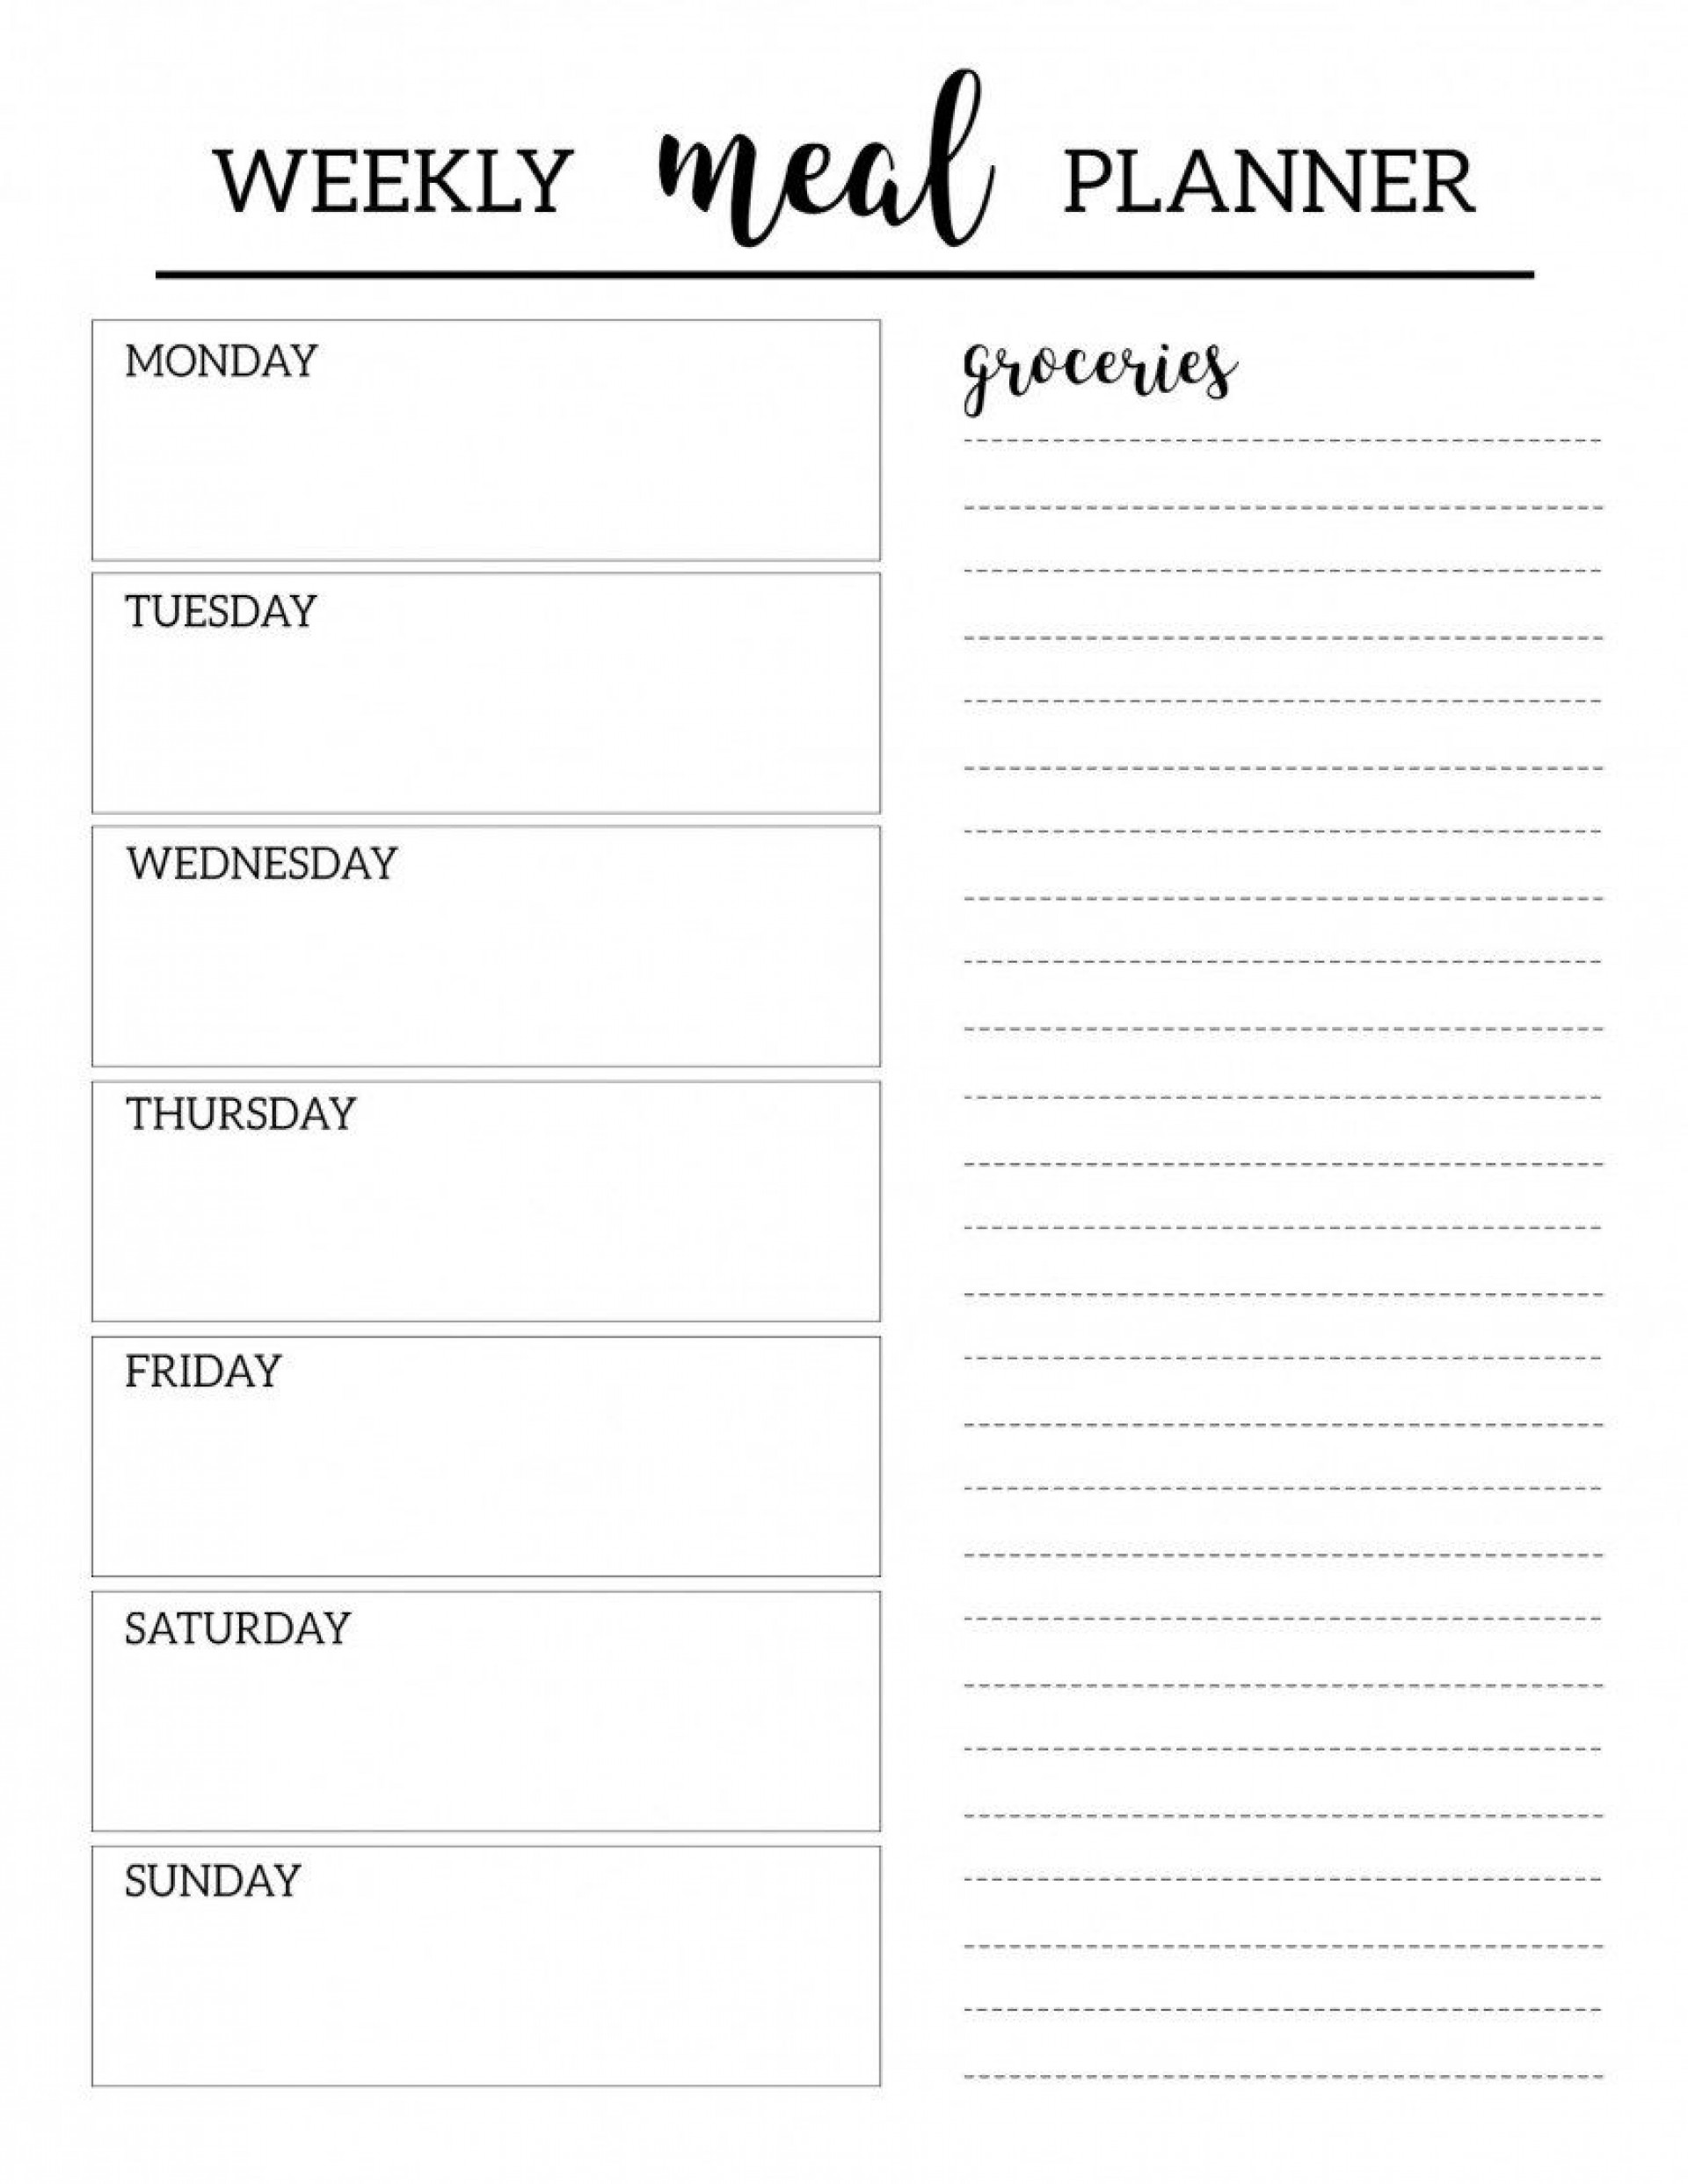 003 Top Free Food Planner Template Highest Clarity  Printable Weekly Meal With Grocery List Diary Download Editable Word1920